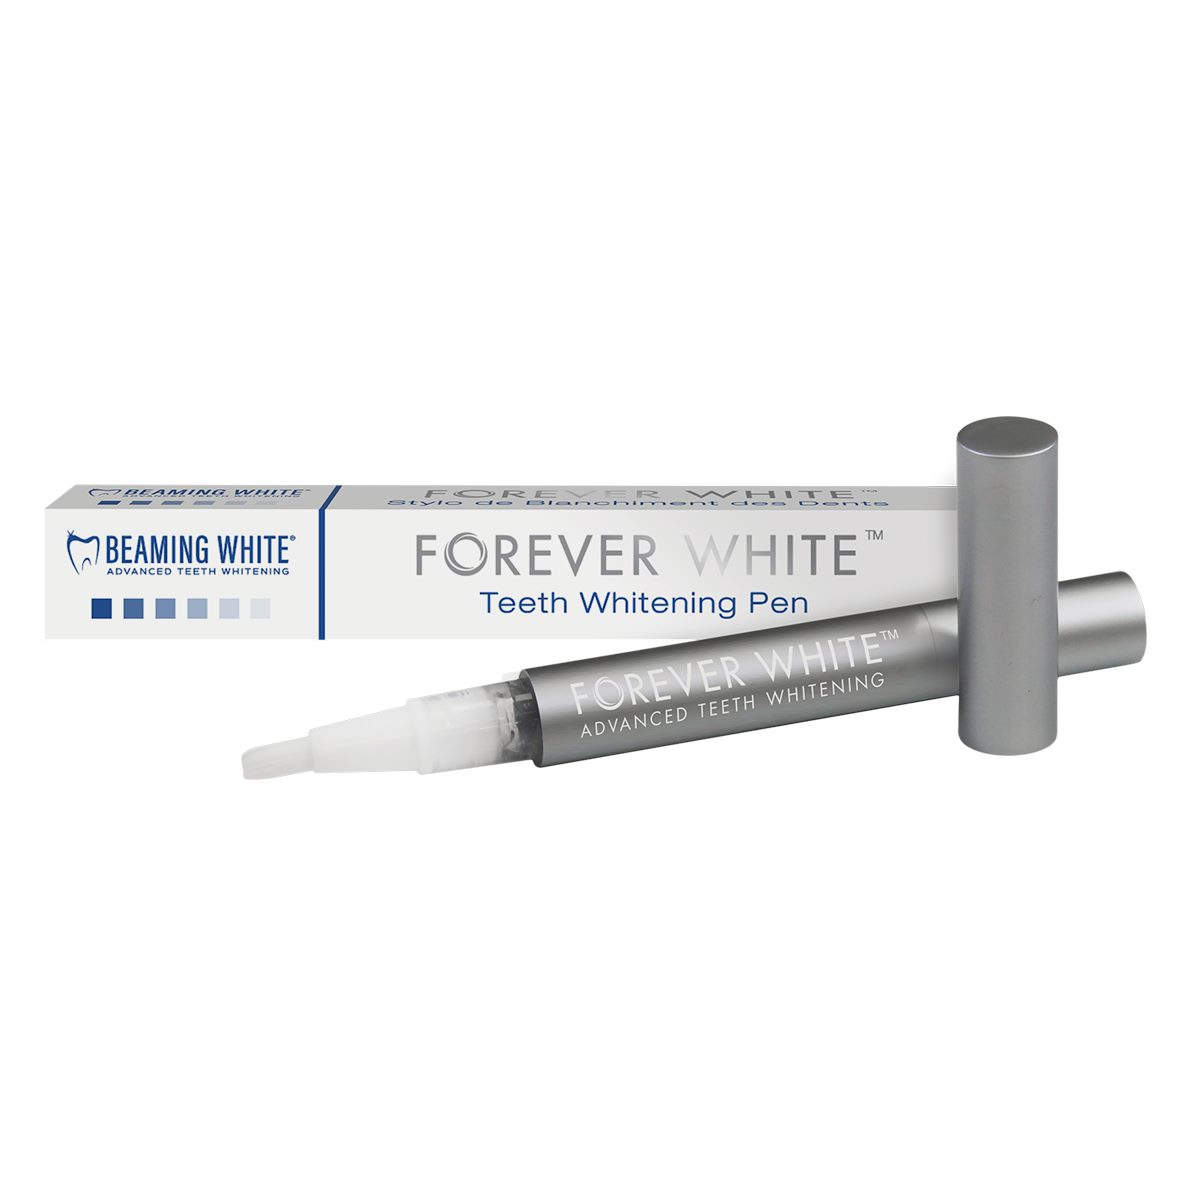 forever white teeth whitening pen with 16% carbamide peroxide gel